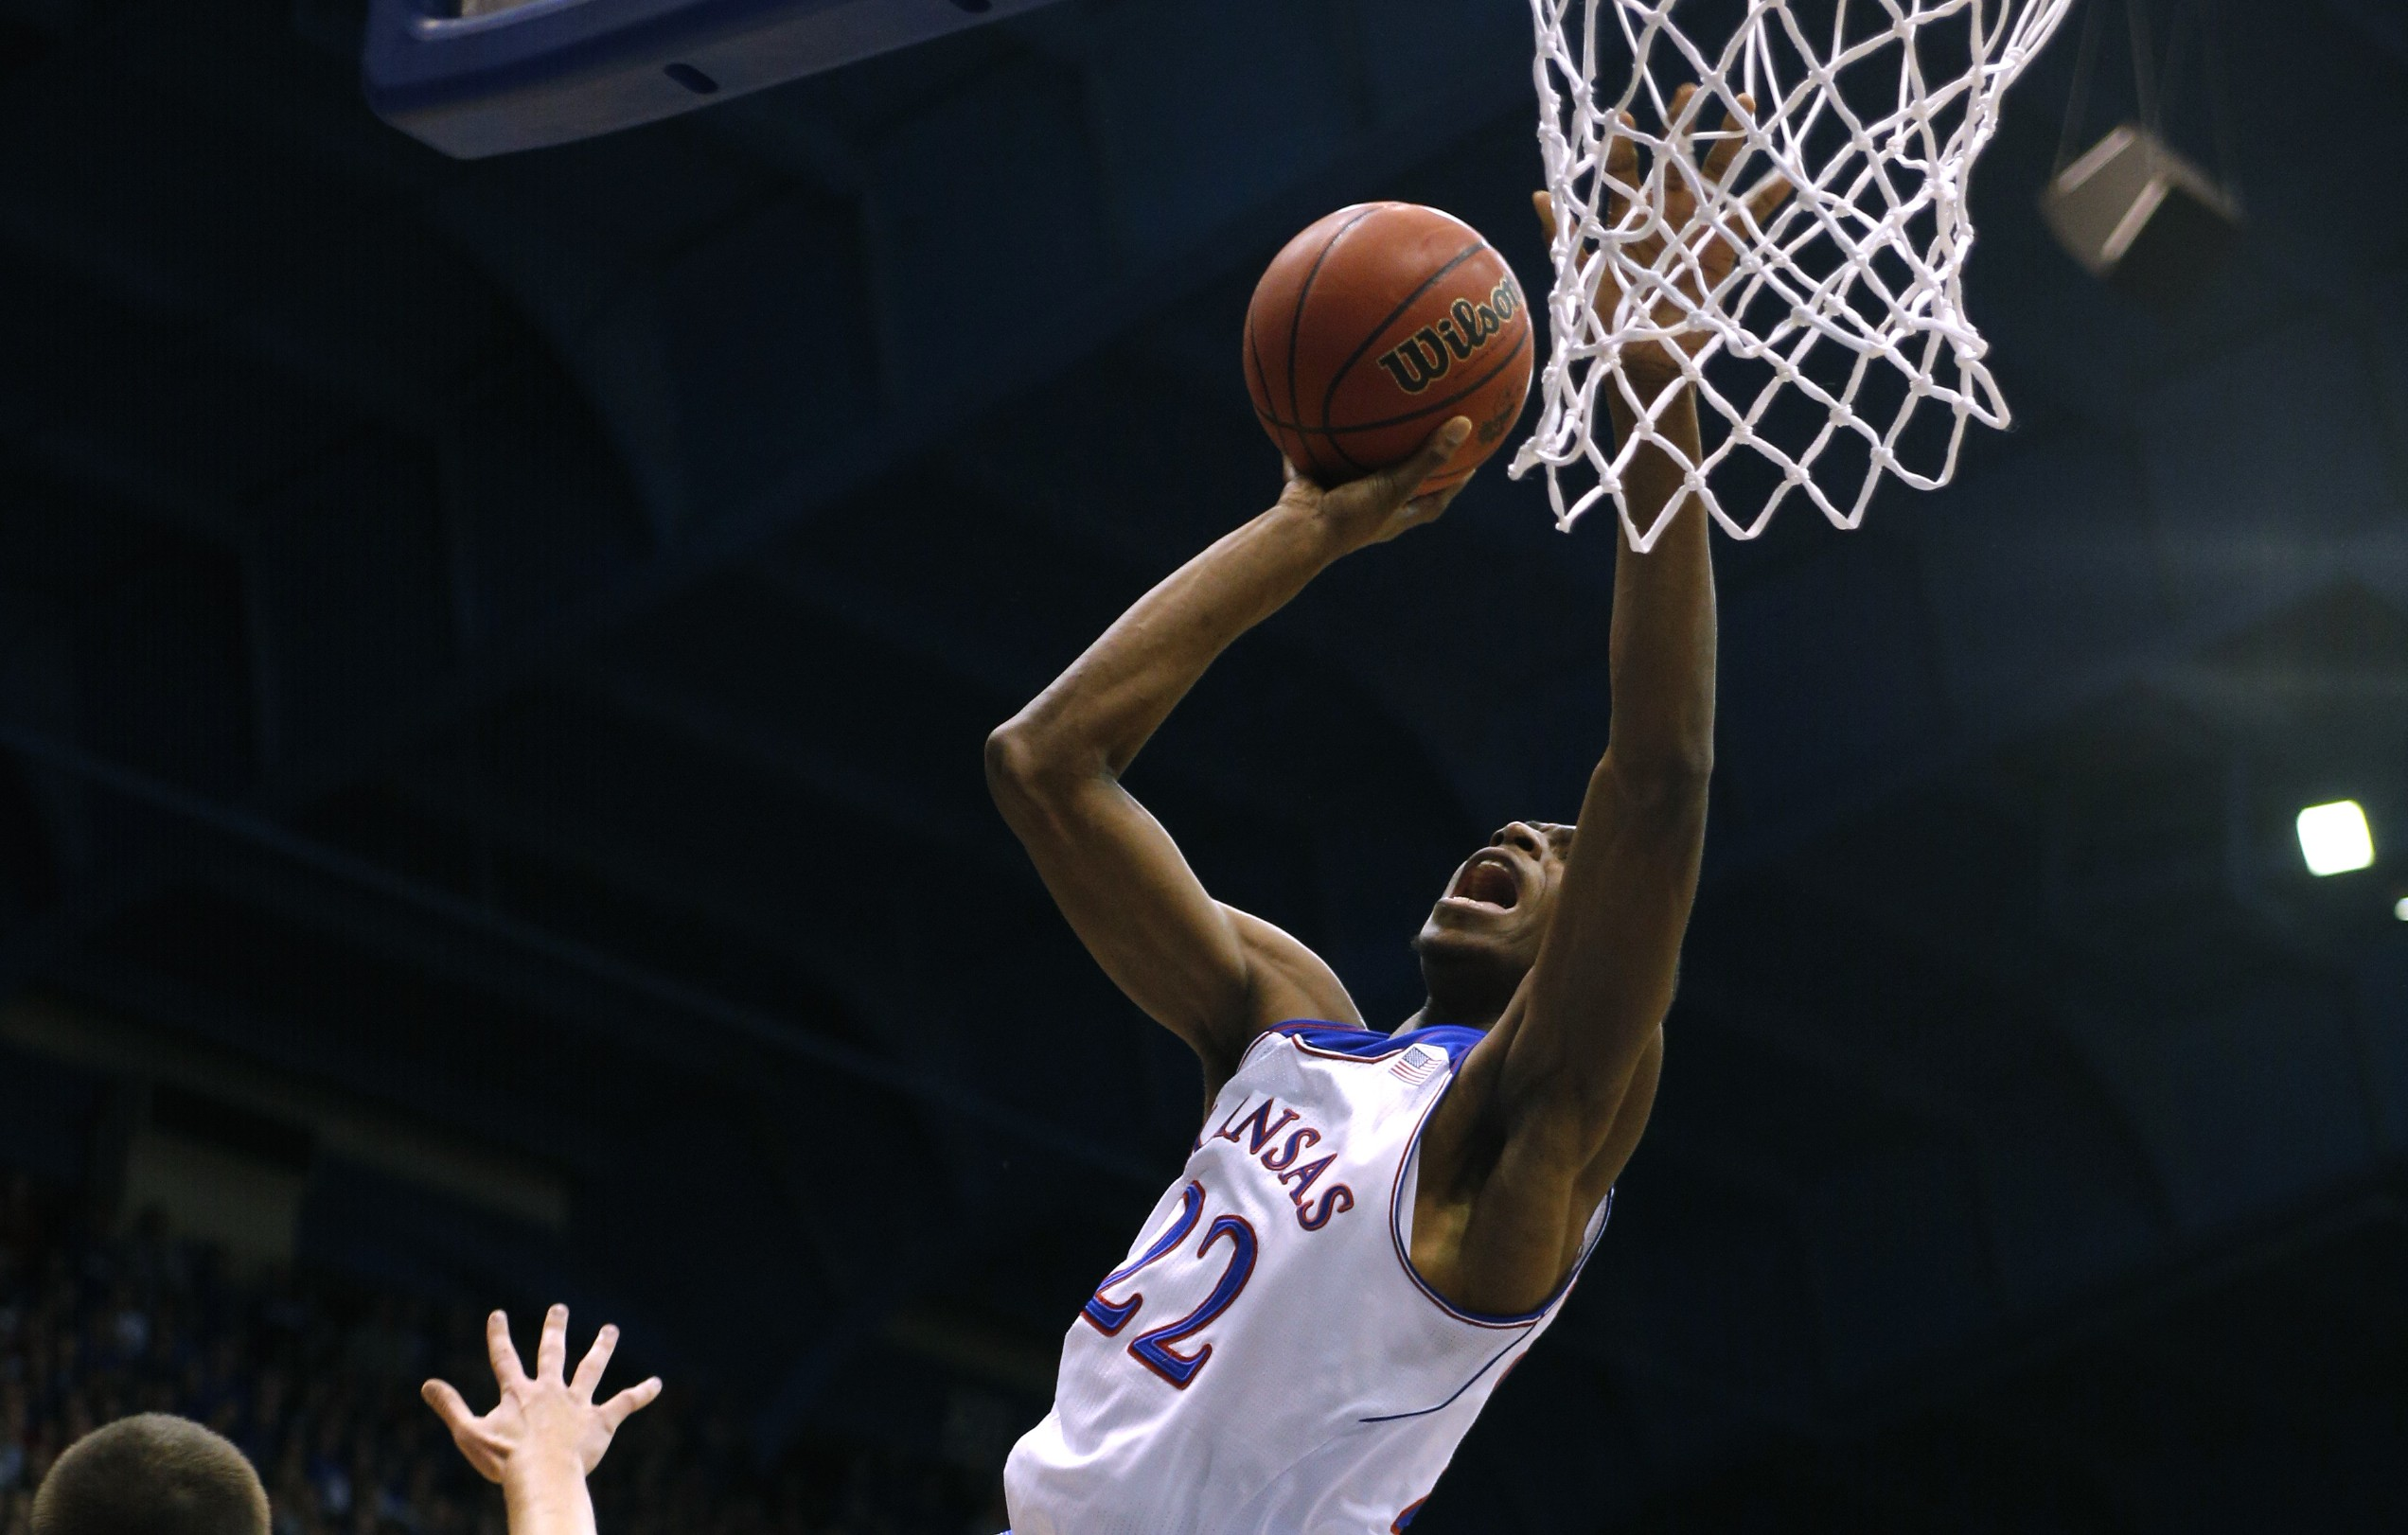 Andrew Wiggins (Photo by Ed Zurga/Getty Images)